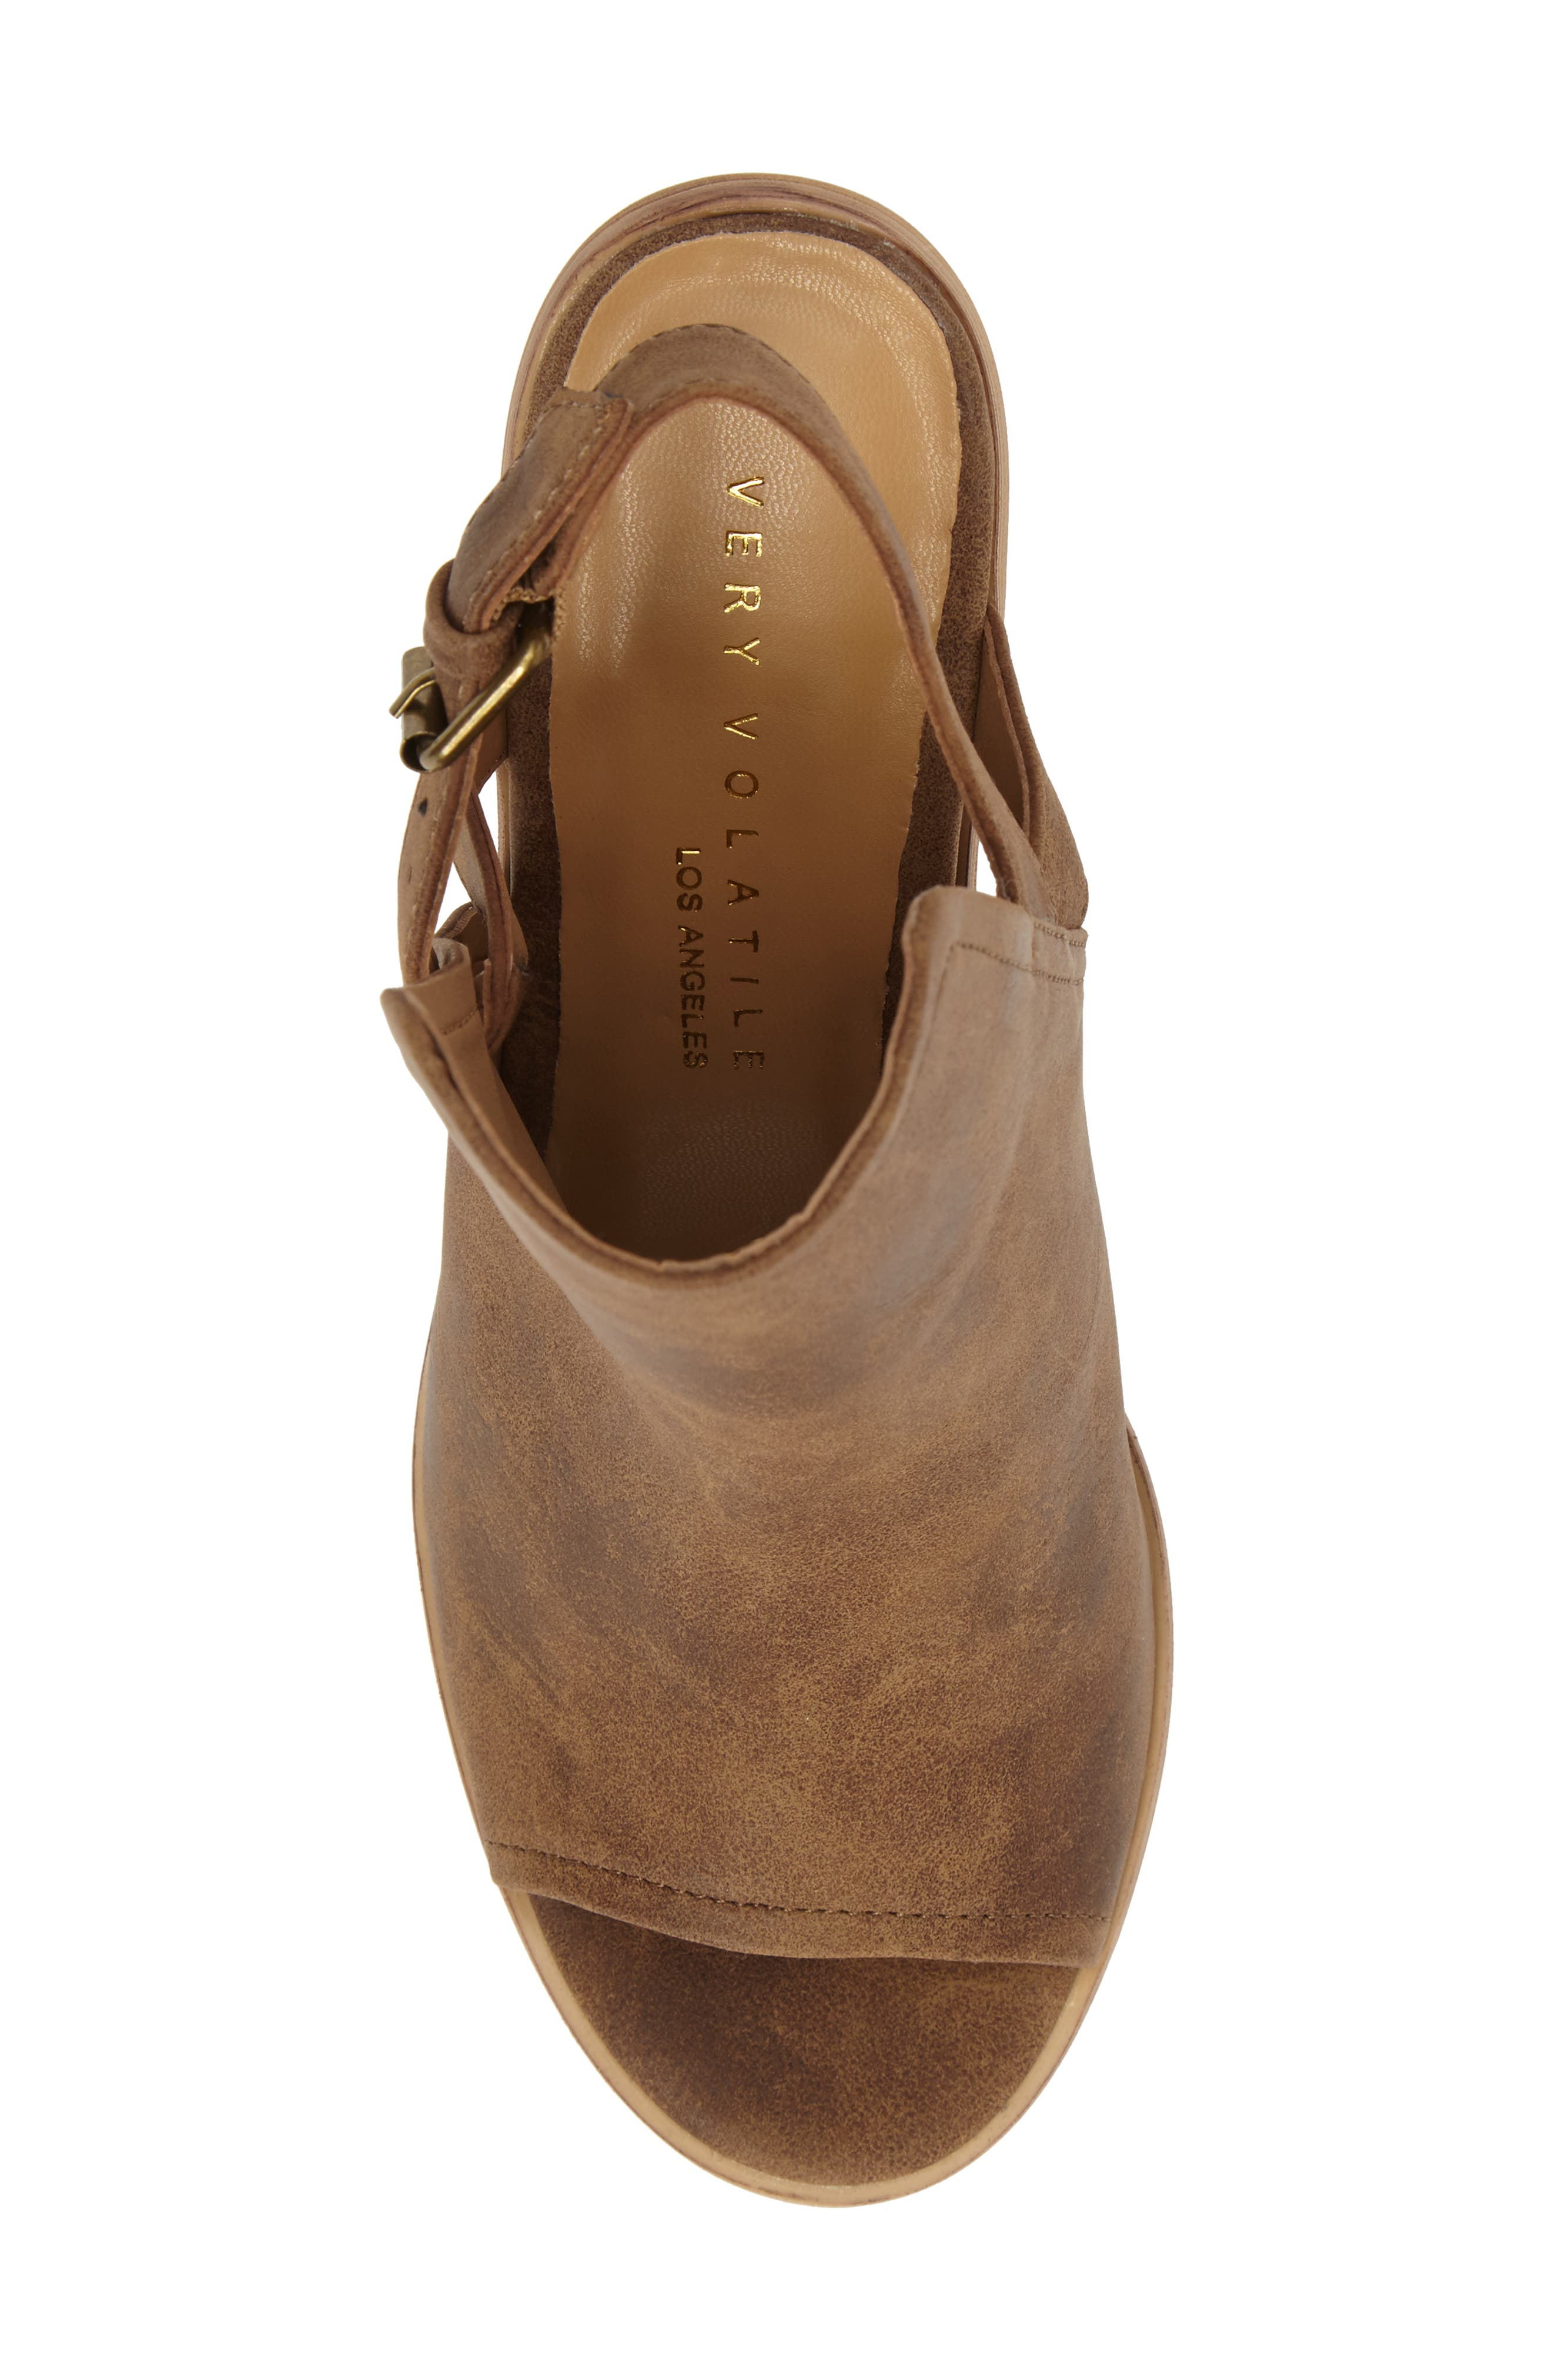 Bolten Sandal,                             Alternate thumbnail 5, color,                             Taupe Faux Leather